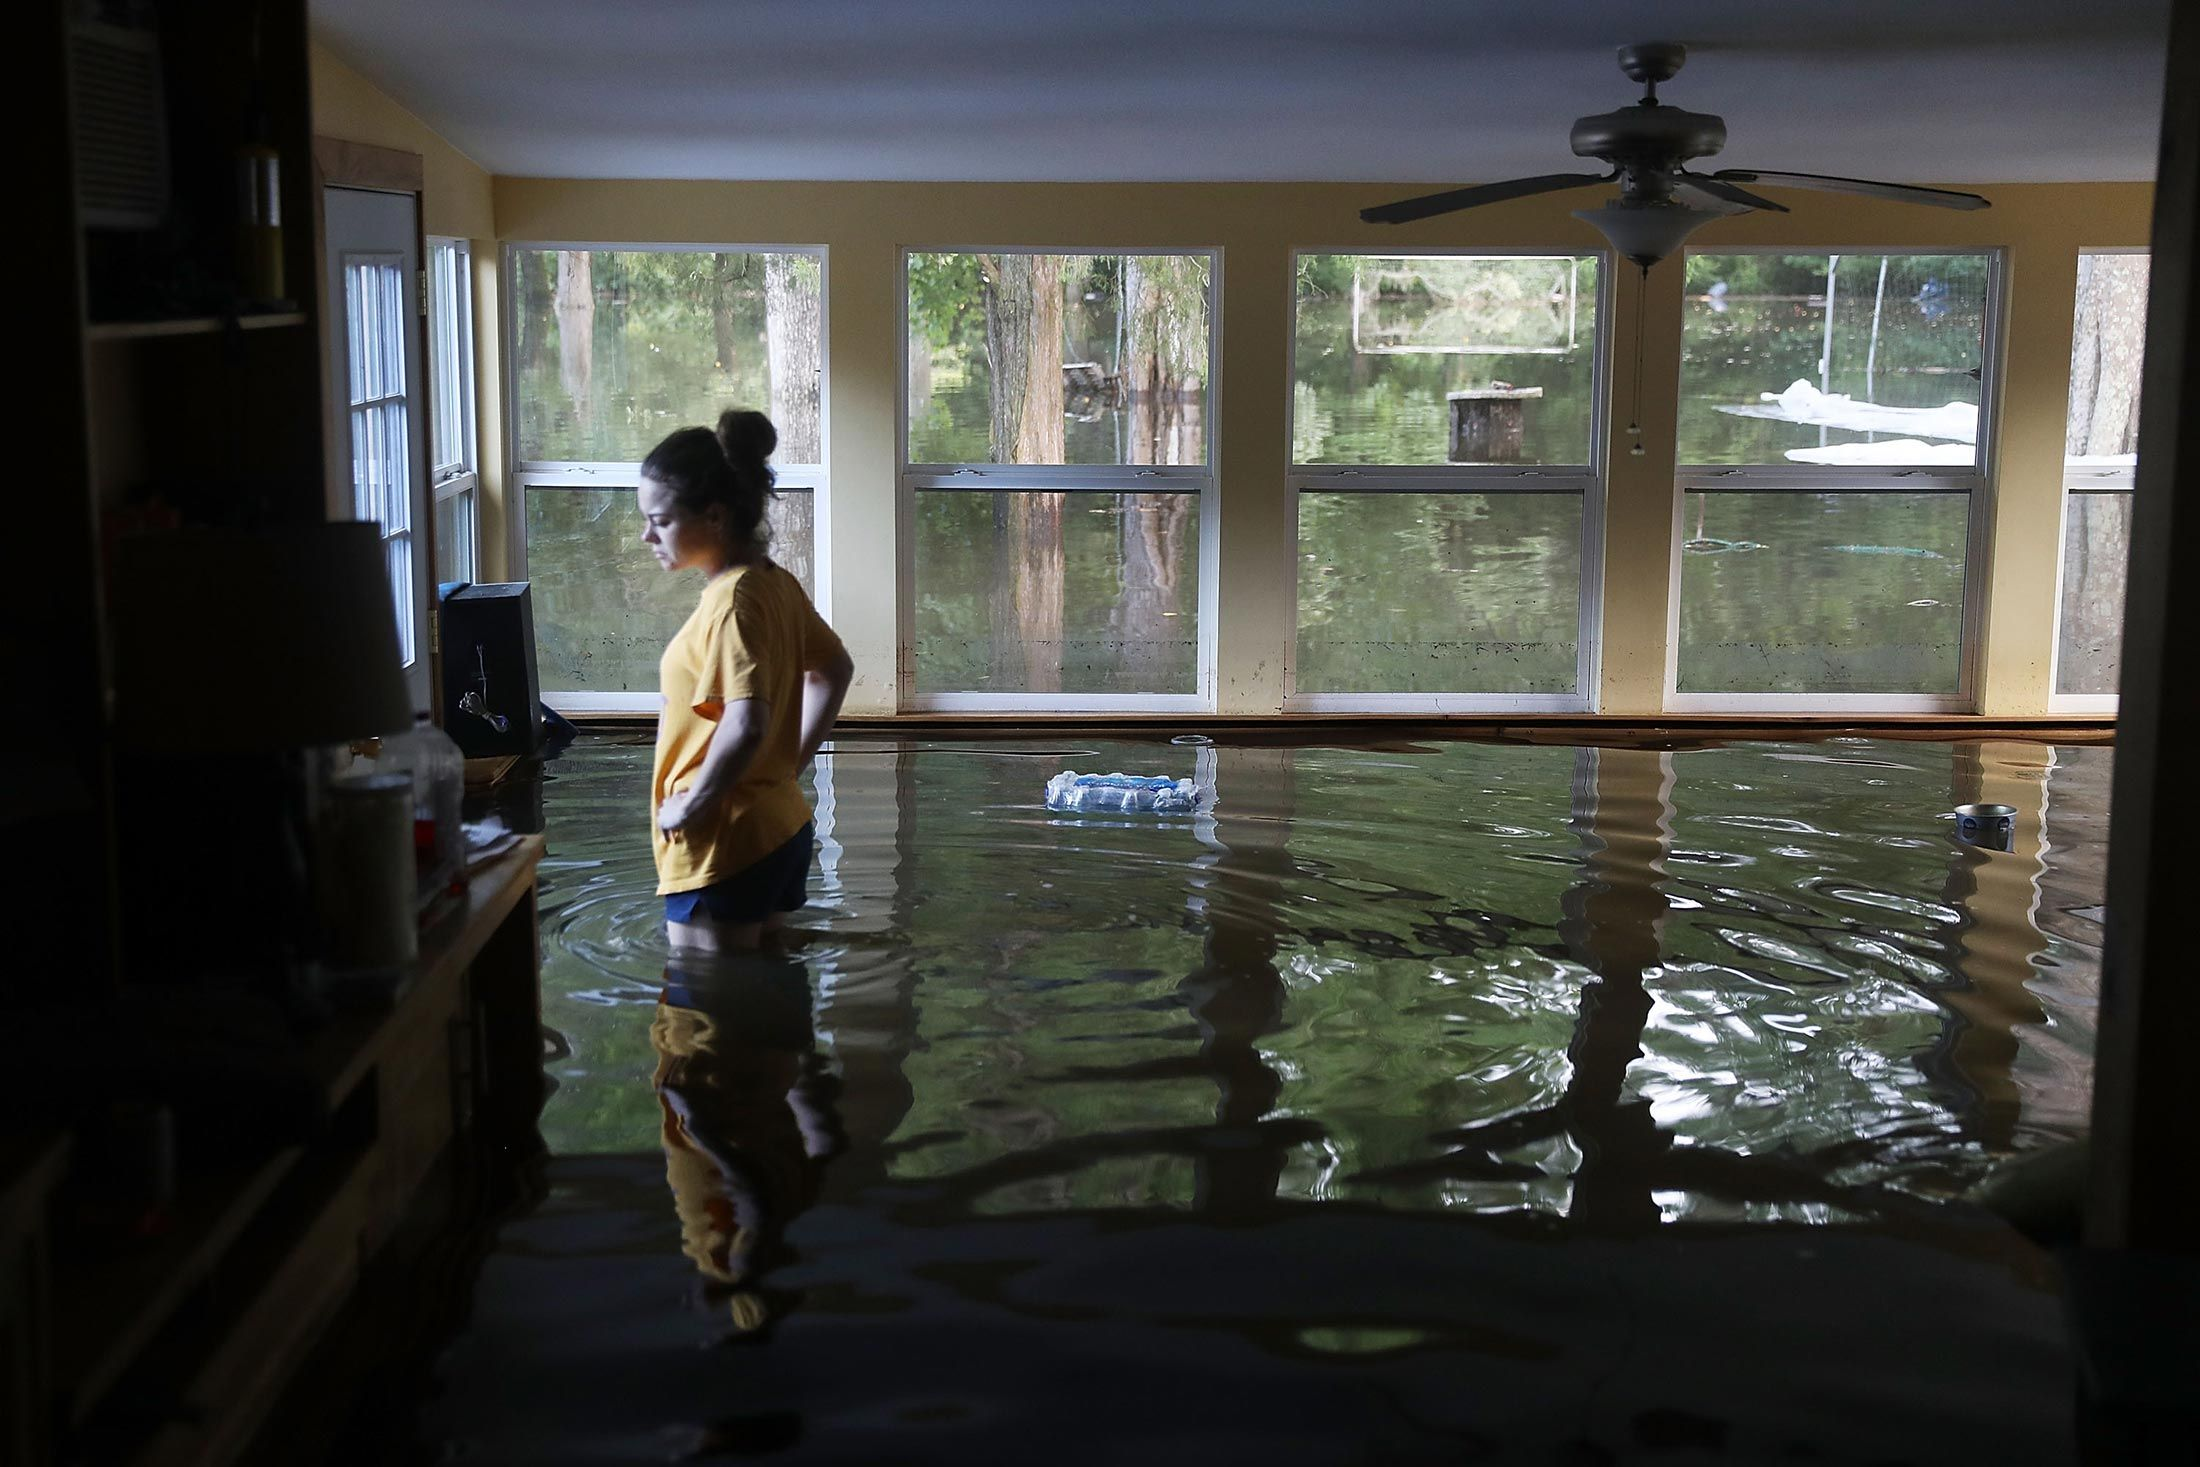 Climate Disasters Cost U.S. $46 Billion as Flooding Leads List - Bloomberg